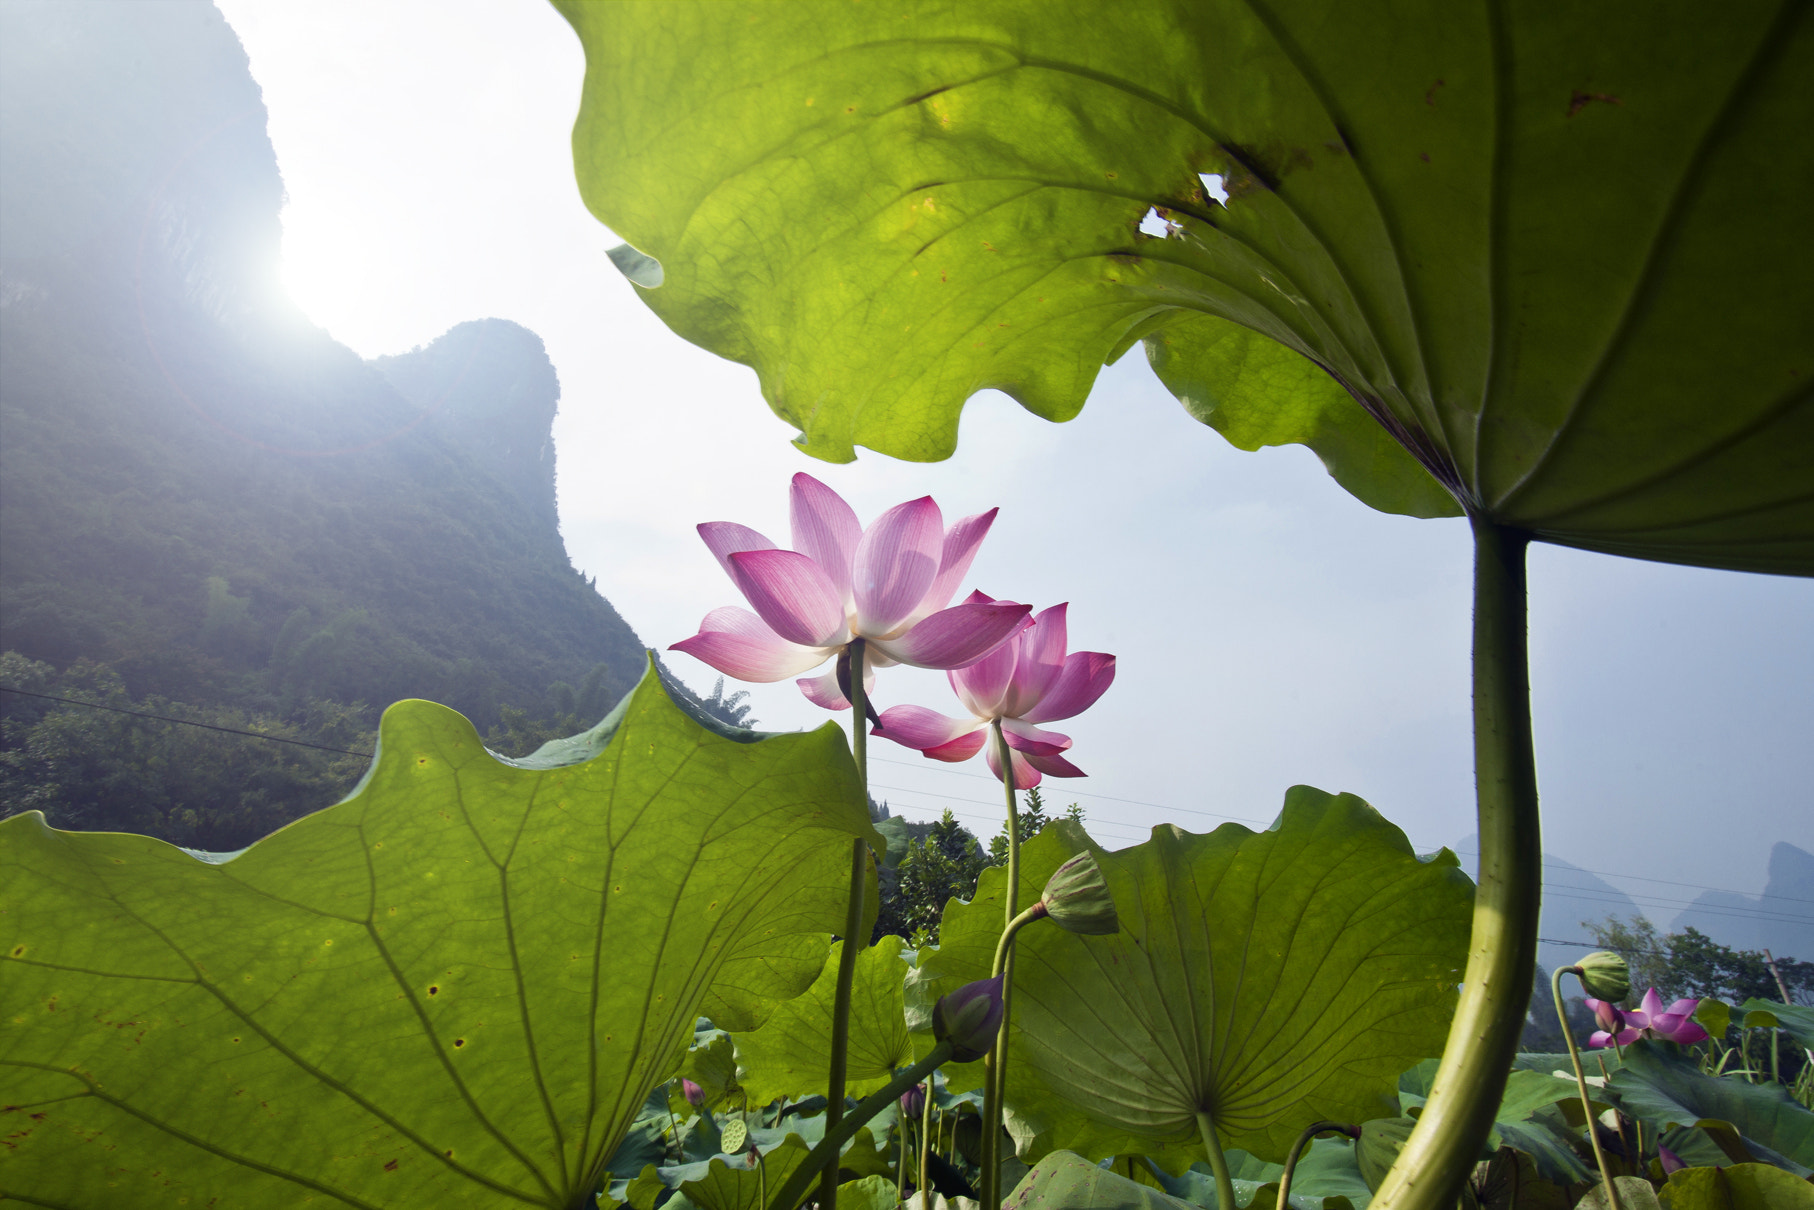 Photograph Lotus by Calvin lee on 500px